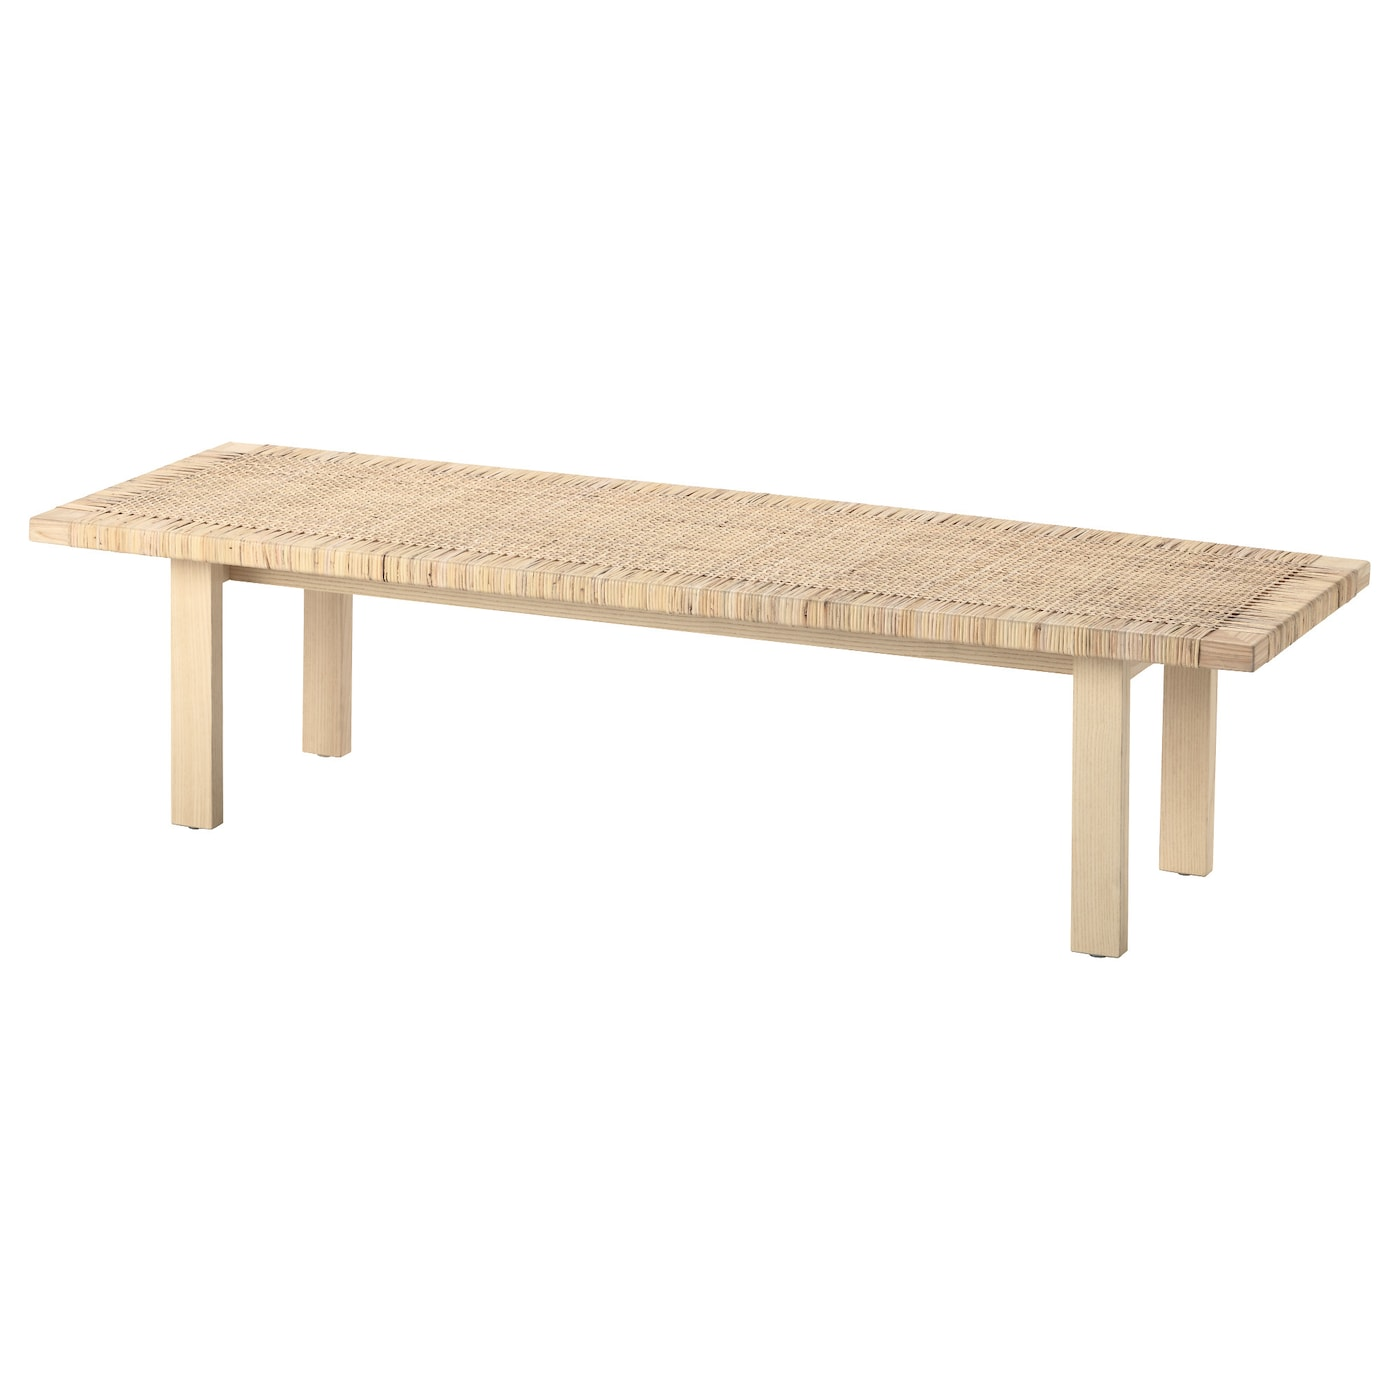 IKEA STOCKHOLM 2017 coffee table